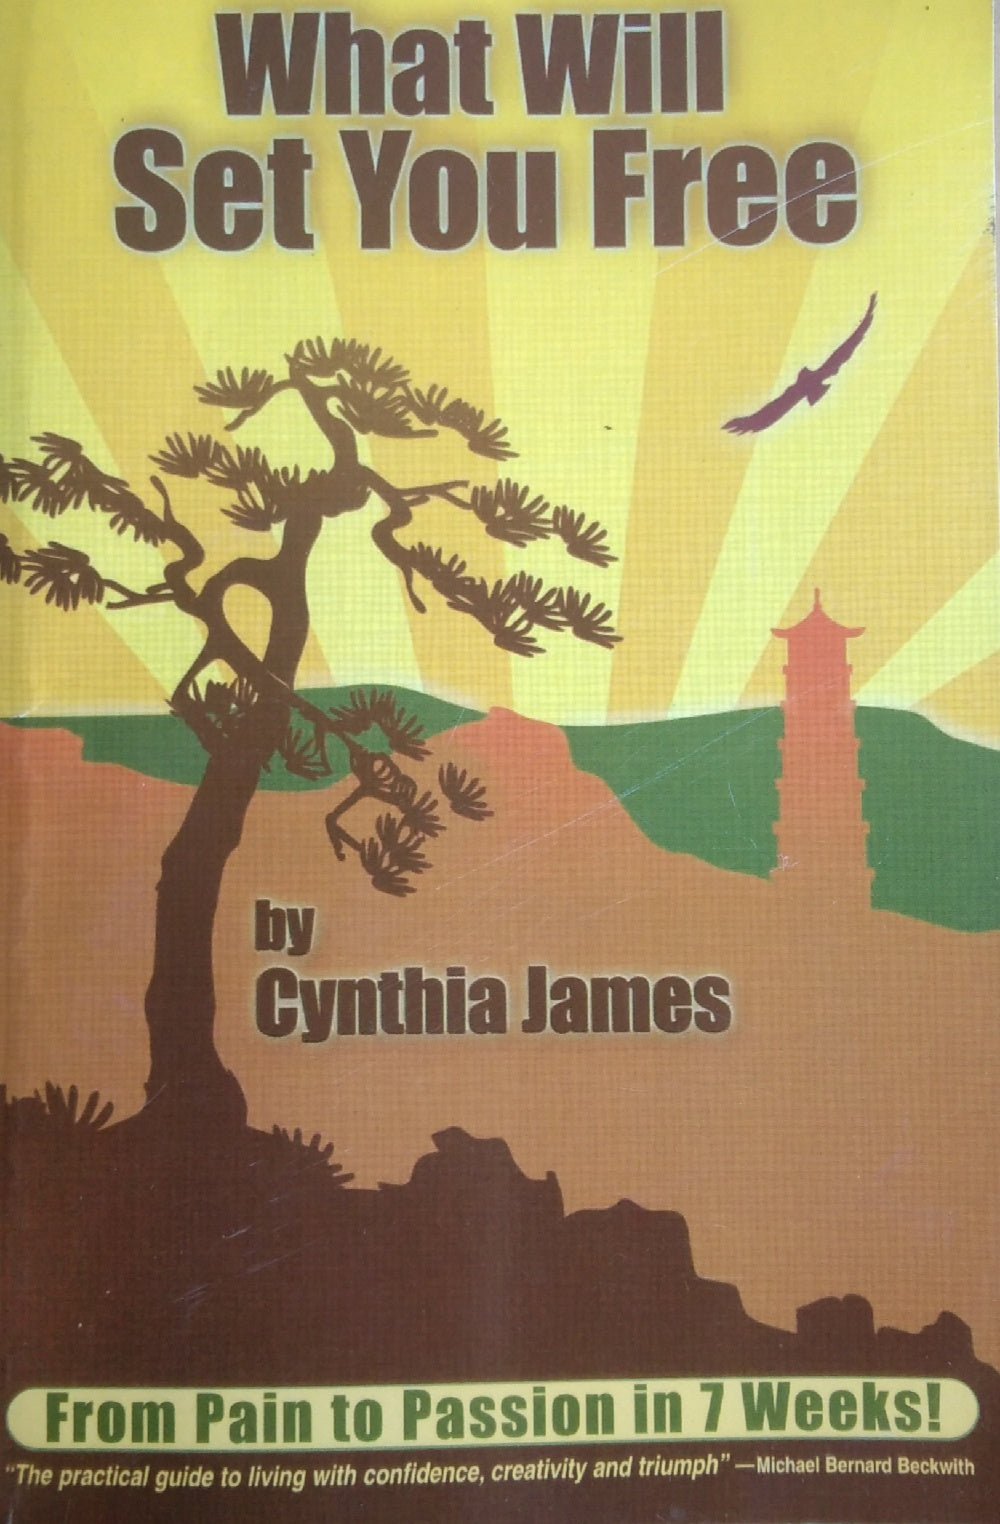 What Will Set You Free by Cynthia James